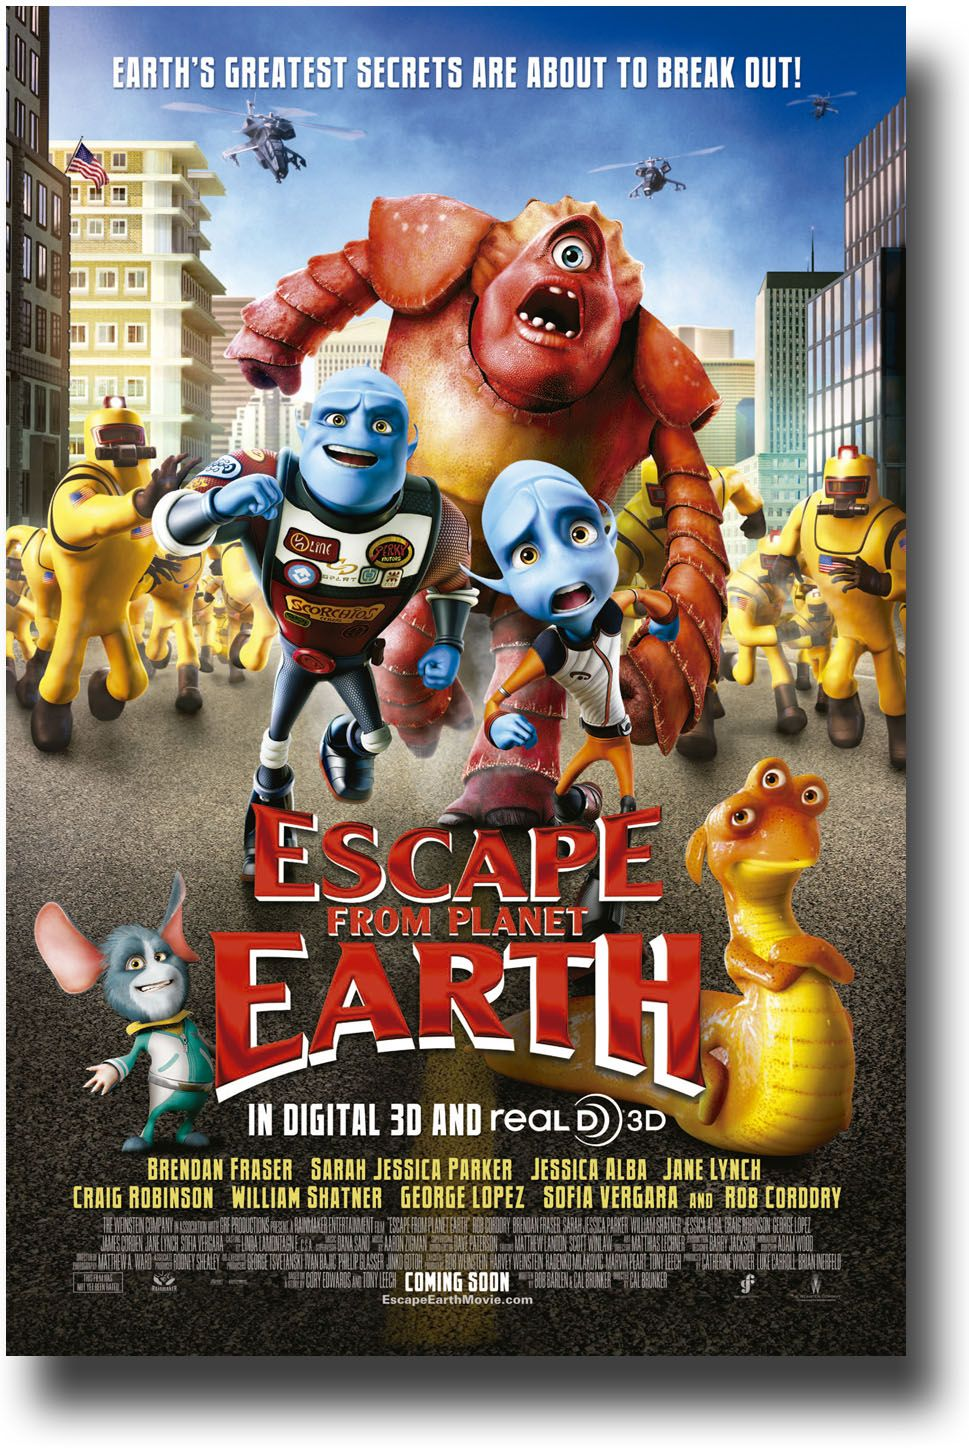 escape from planet earth movie poster 9 84 free information make